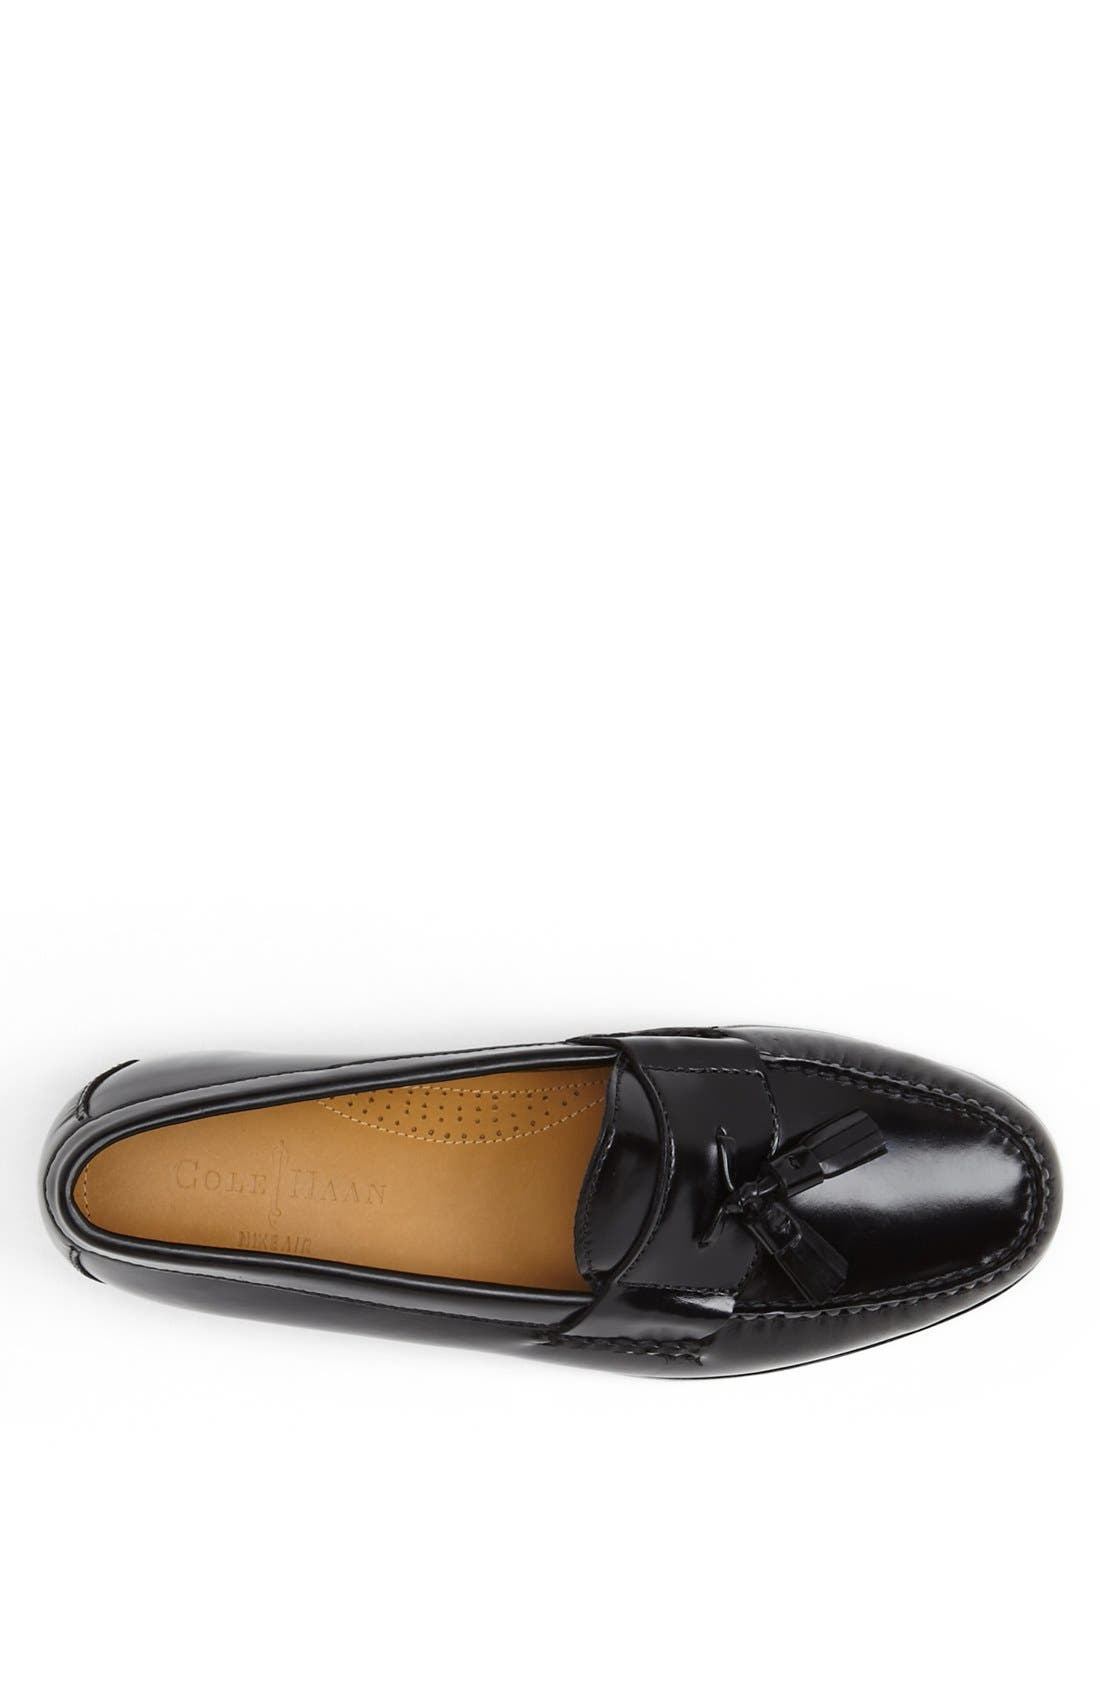 Alternate Image 3  - Cole Haan 'Pinch Air Tassel' Loafer (Online Only)   (Men)